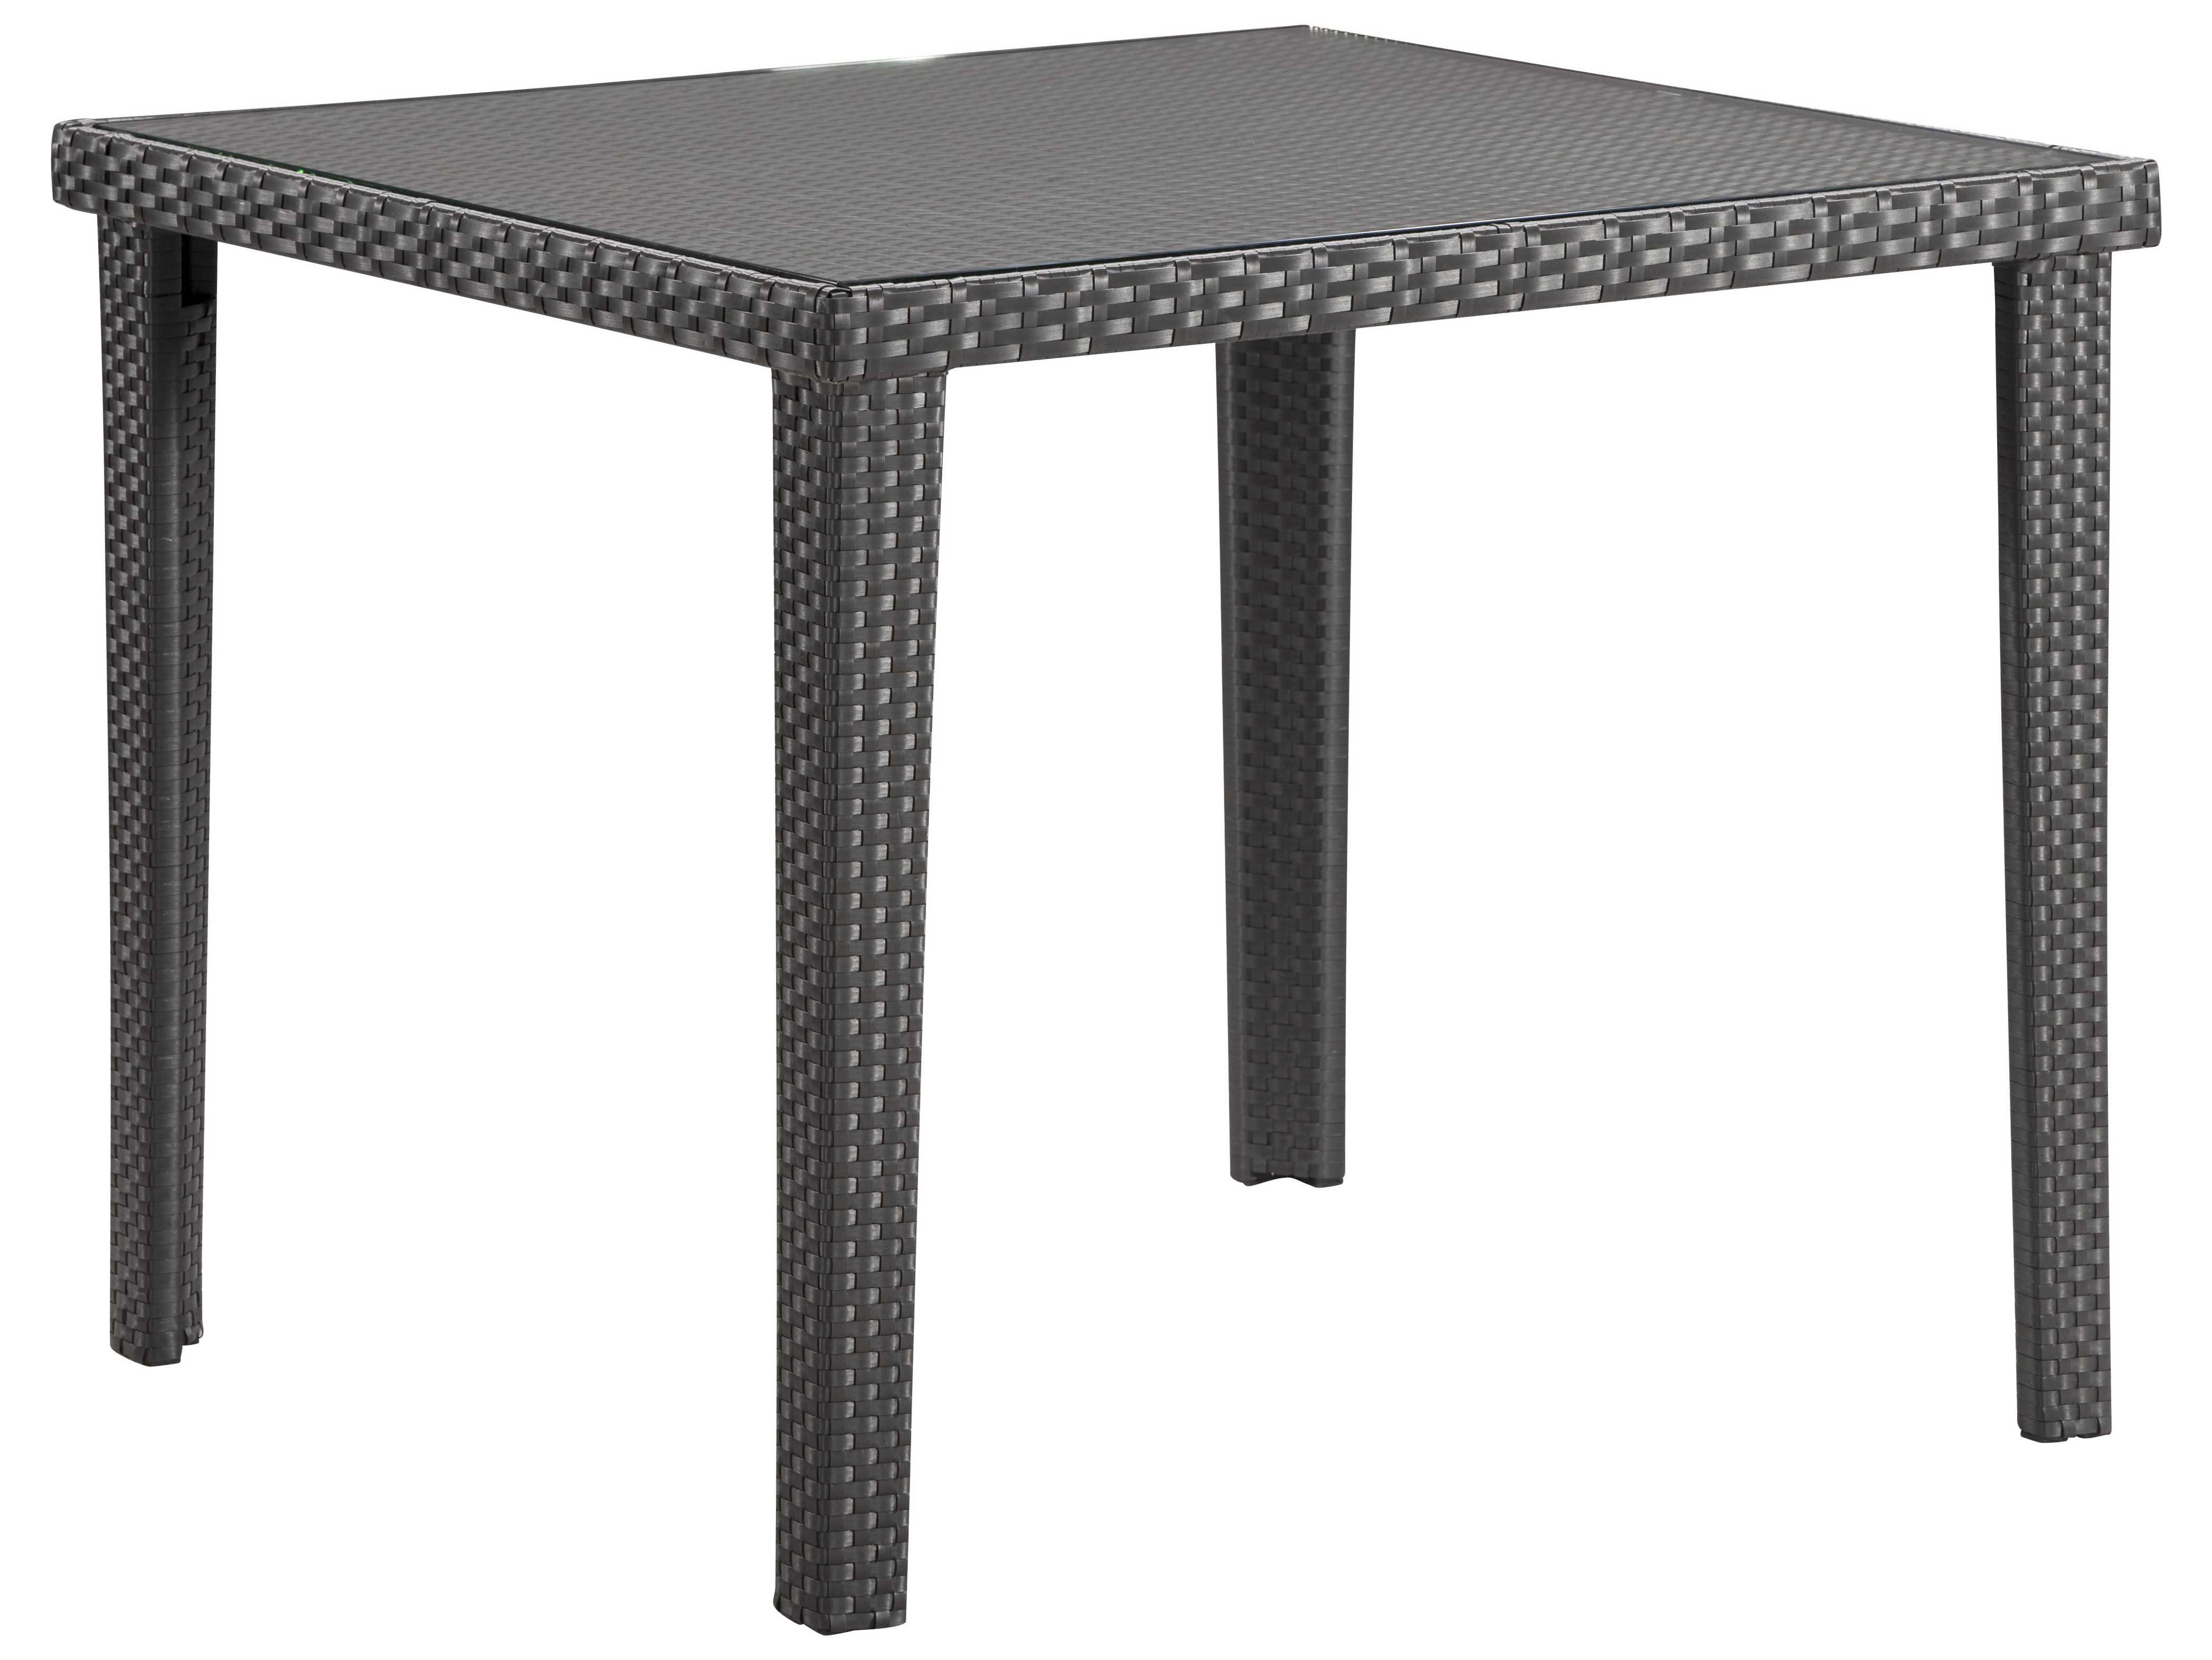 zuo outdoor cavendish aluminum wicker square glass top dining table in espresso 701356. Black Bedroom Furniture Sets. Home Design Ideas